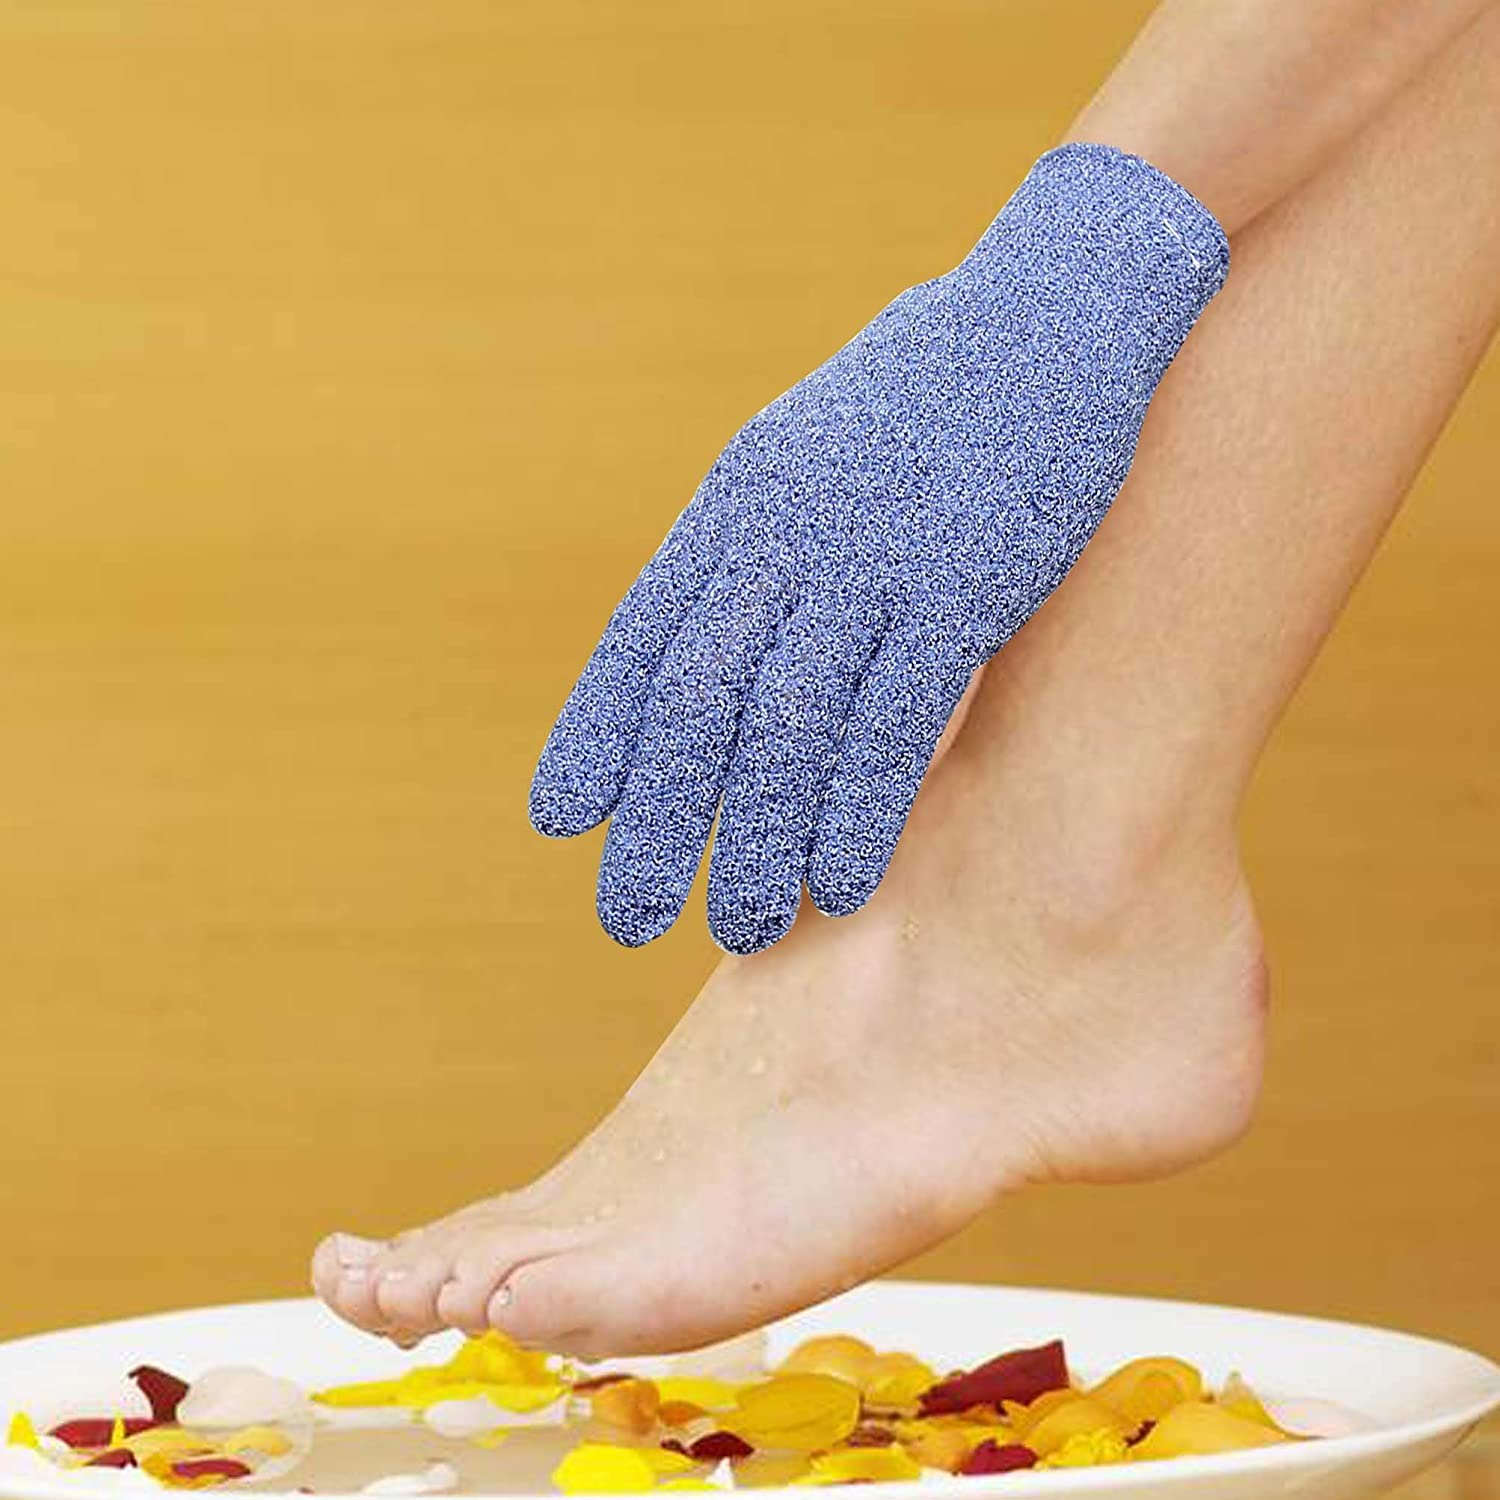 EvridWear Exfoliating Dual Texture Bath Gloves for Shower, Spa, Massage and Body Scrubs, Dead Skin Cell Remover, Gloves with hanging loop (1 Pair Heavy Glove): Beauty